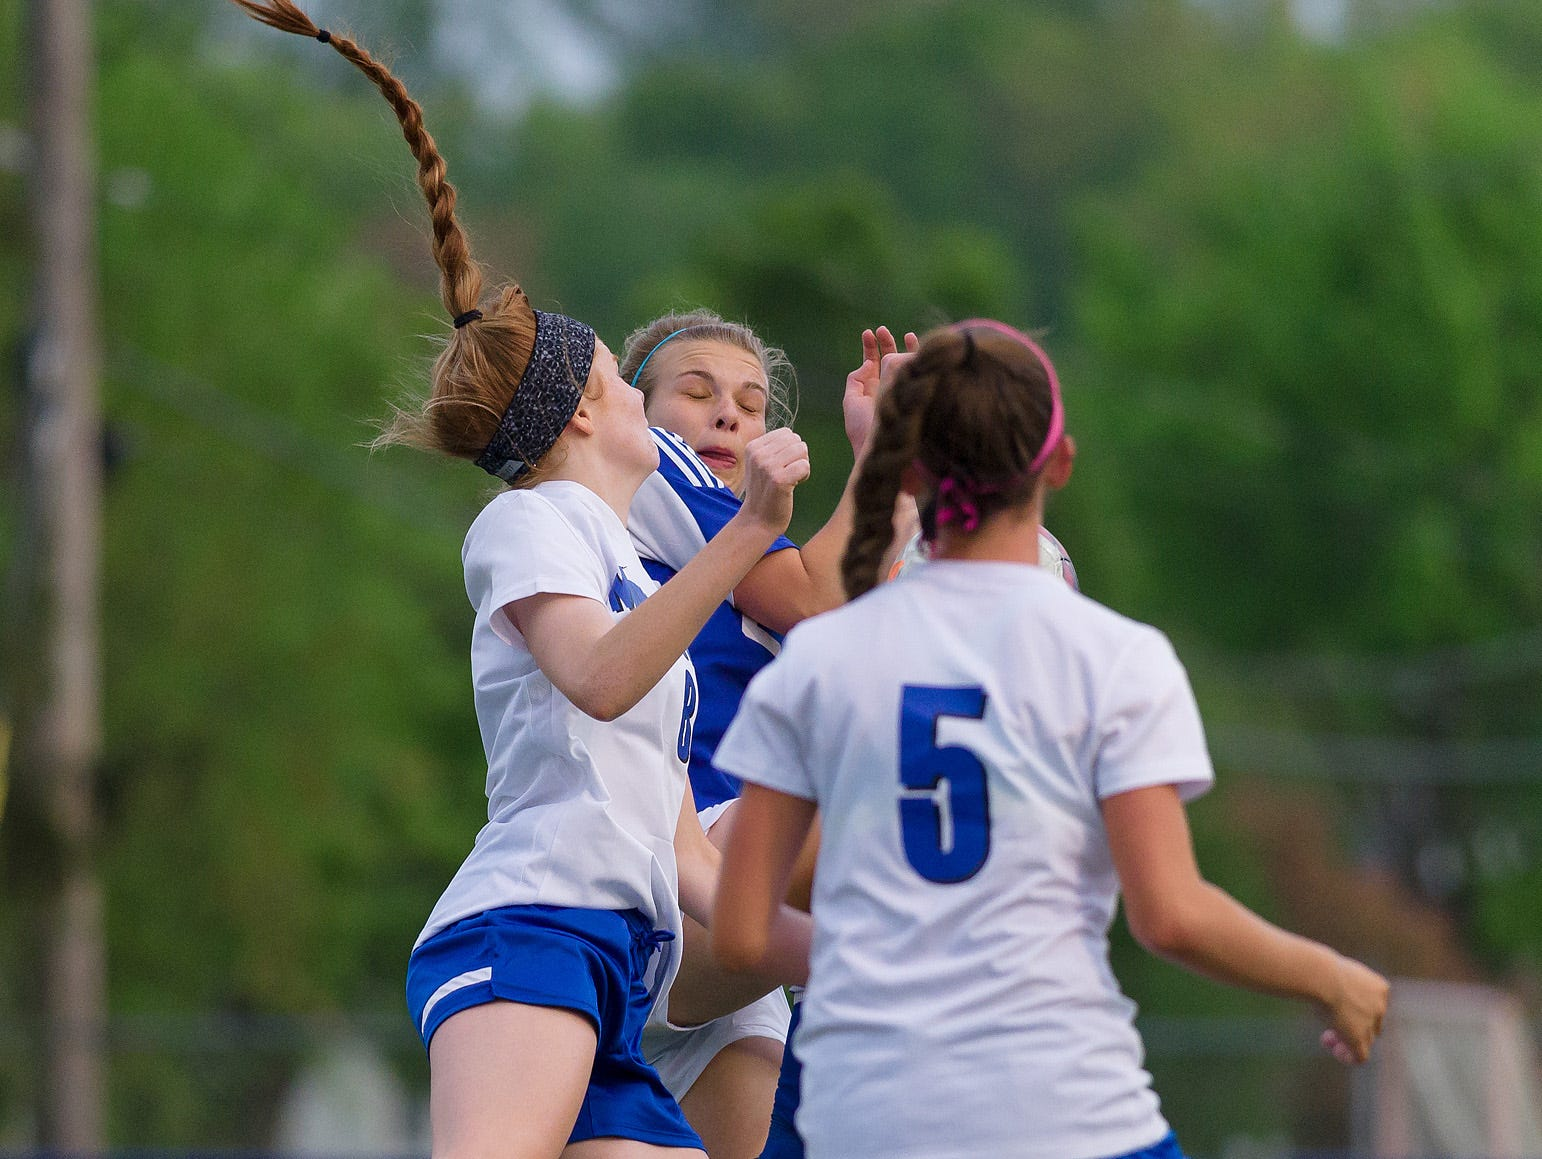 Leigh Willis (8) of Middletown and Leah Frerichs (22) of Charter collide in the air in Charter at Middletown girls soccer game on Wednesday.